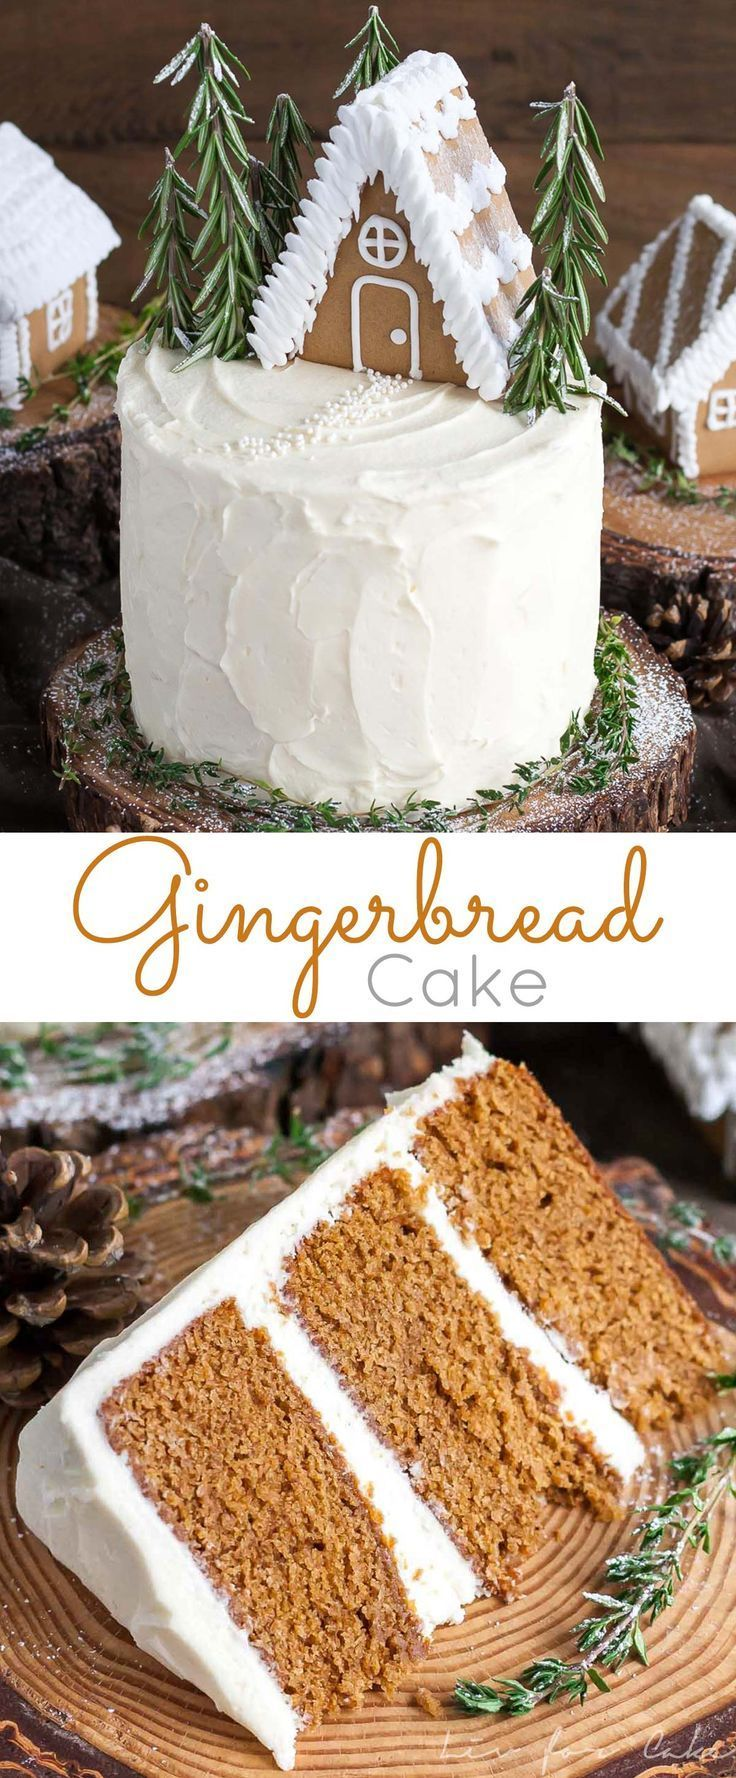 This Gingerbread Cake is perfect for the holidays! A moist and delicious ginger cake with a tangy cream cheese frosting.   http://livforcake.com